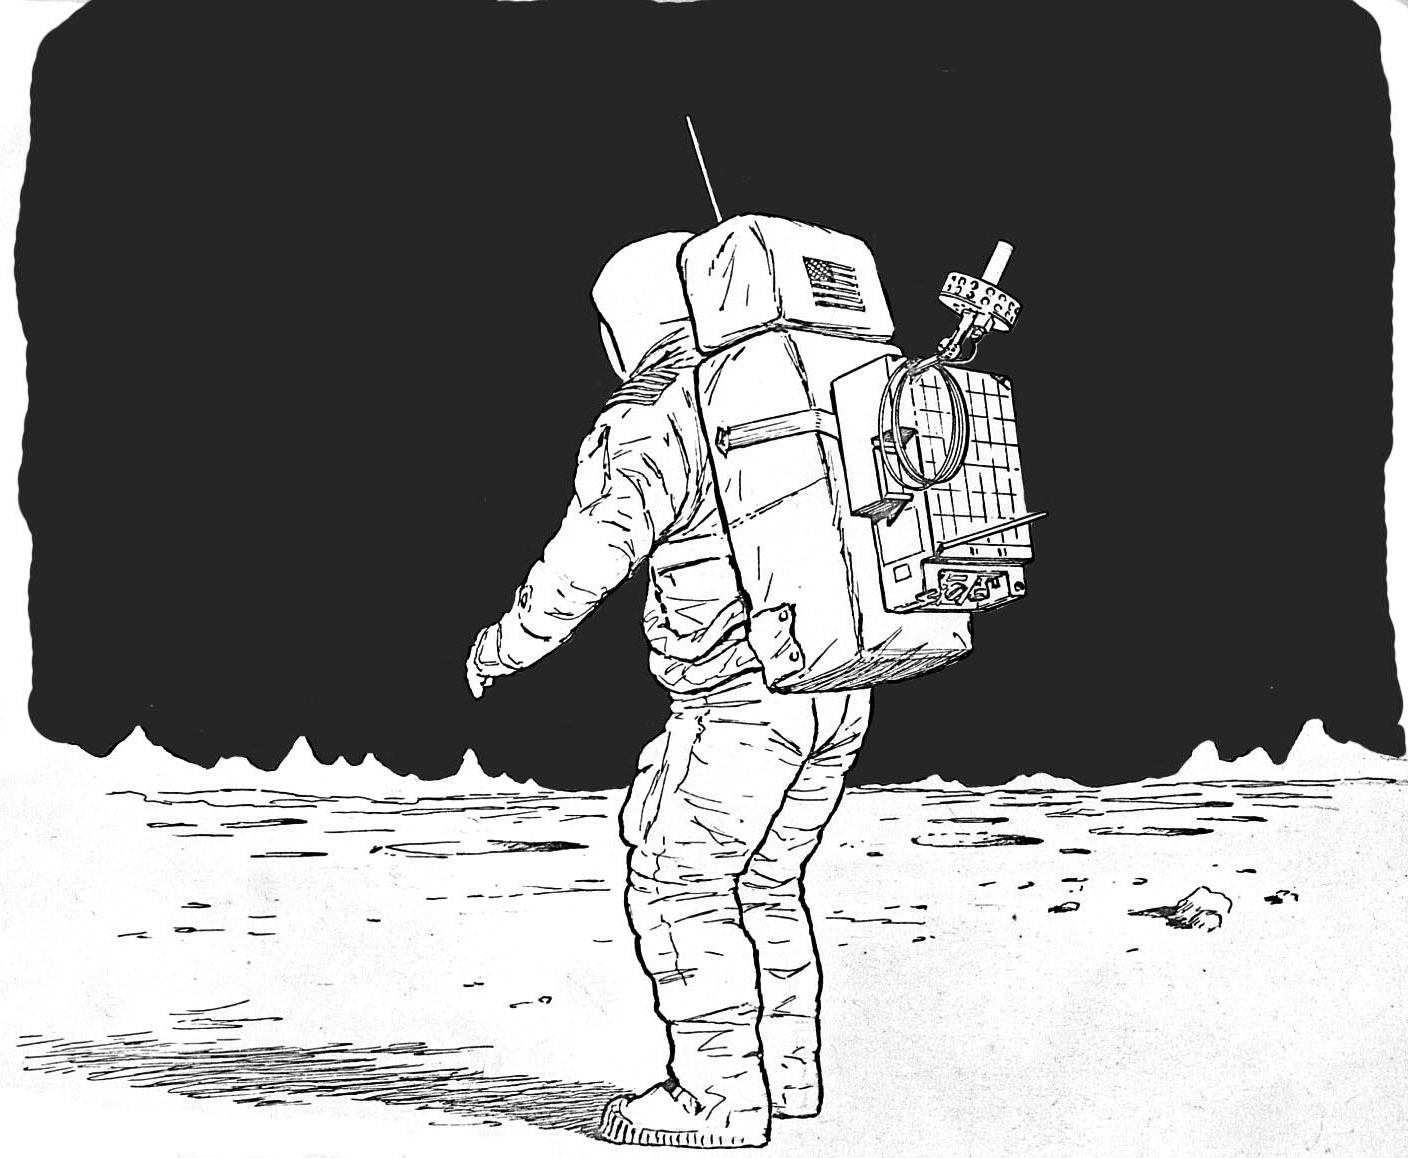 Astronaut On the Moon Drawing - Pics about space